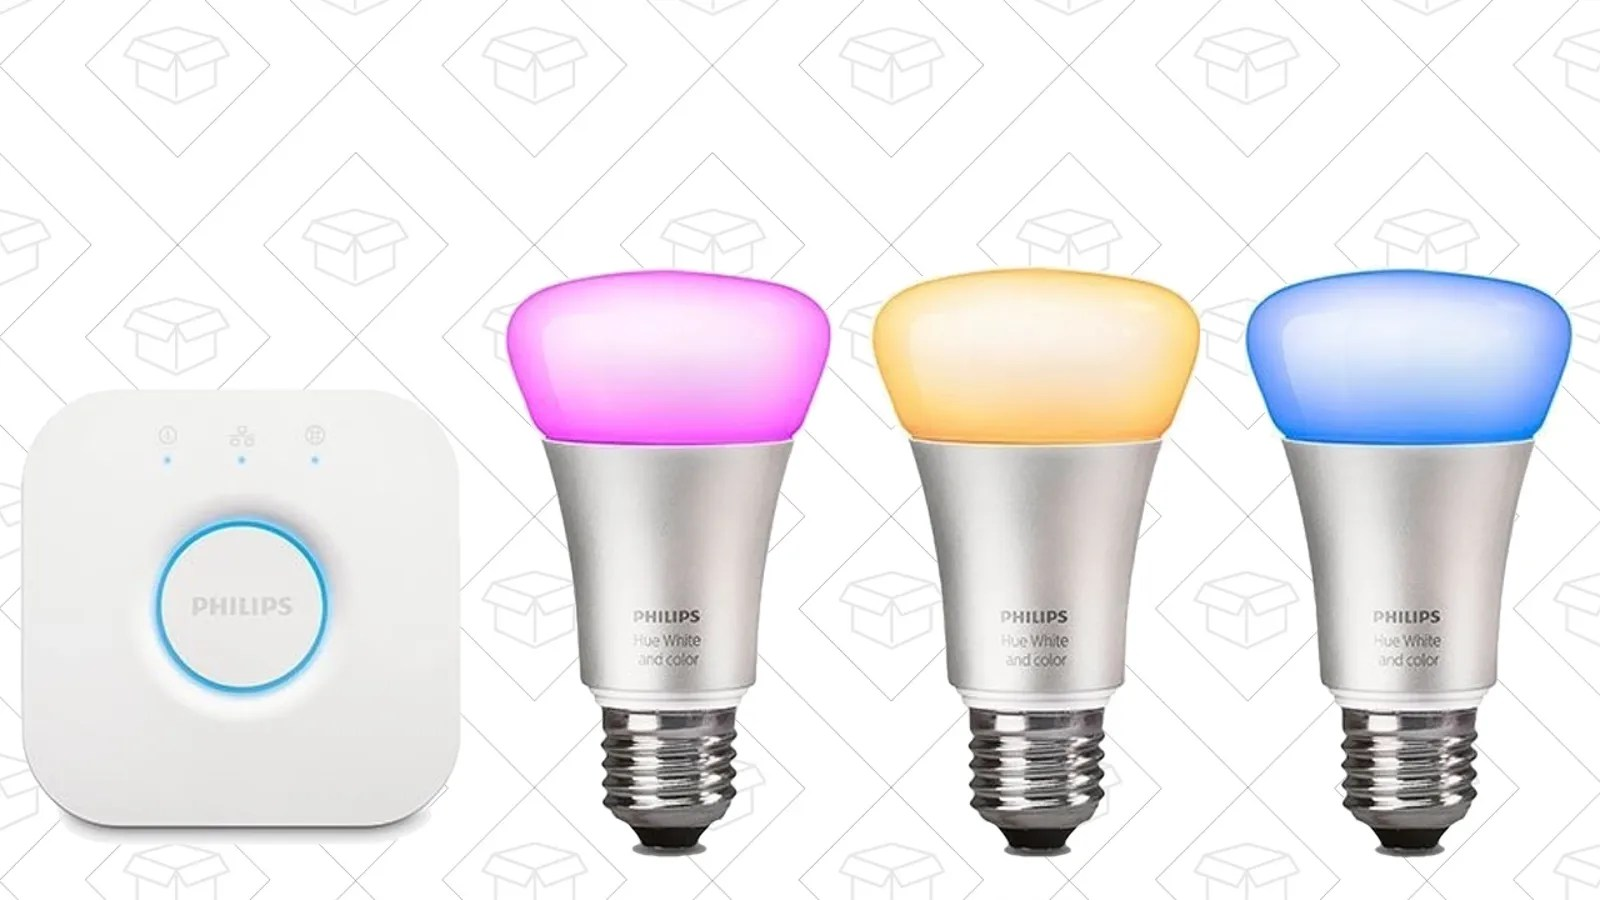 Phillips Light Bulbs How To Get Started With Philips Hue